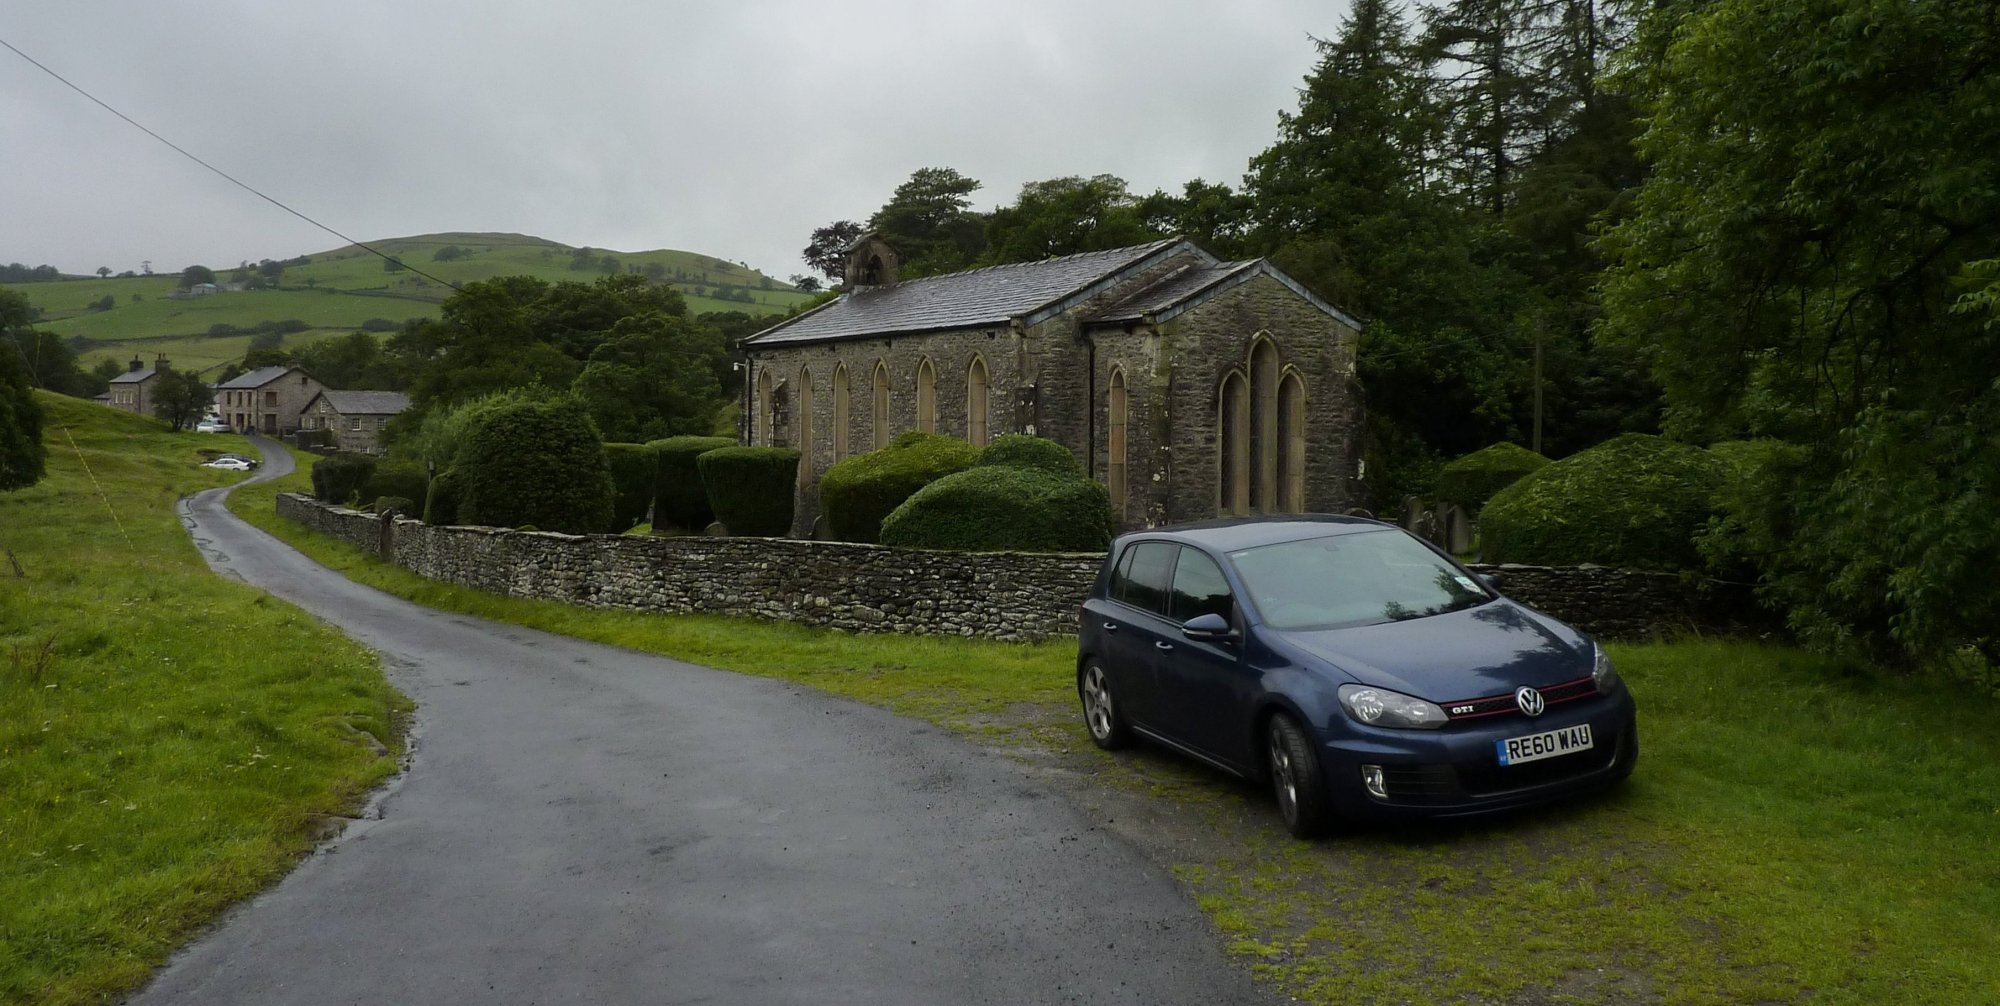 Parking by the church in Howgill Lane